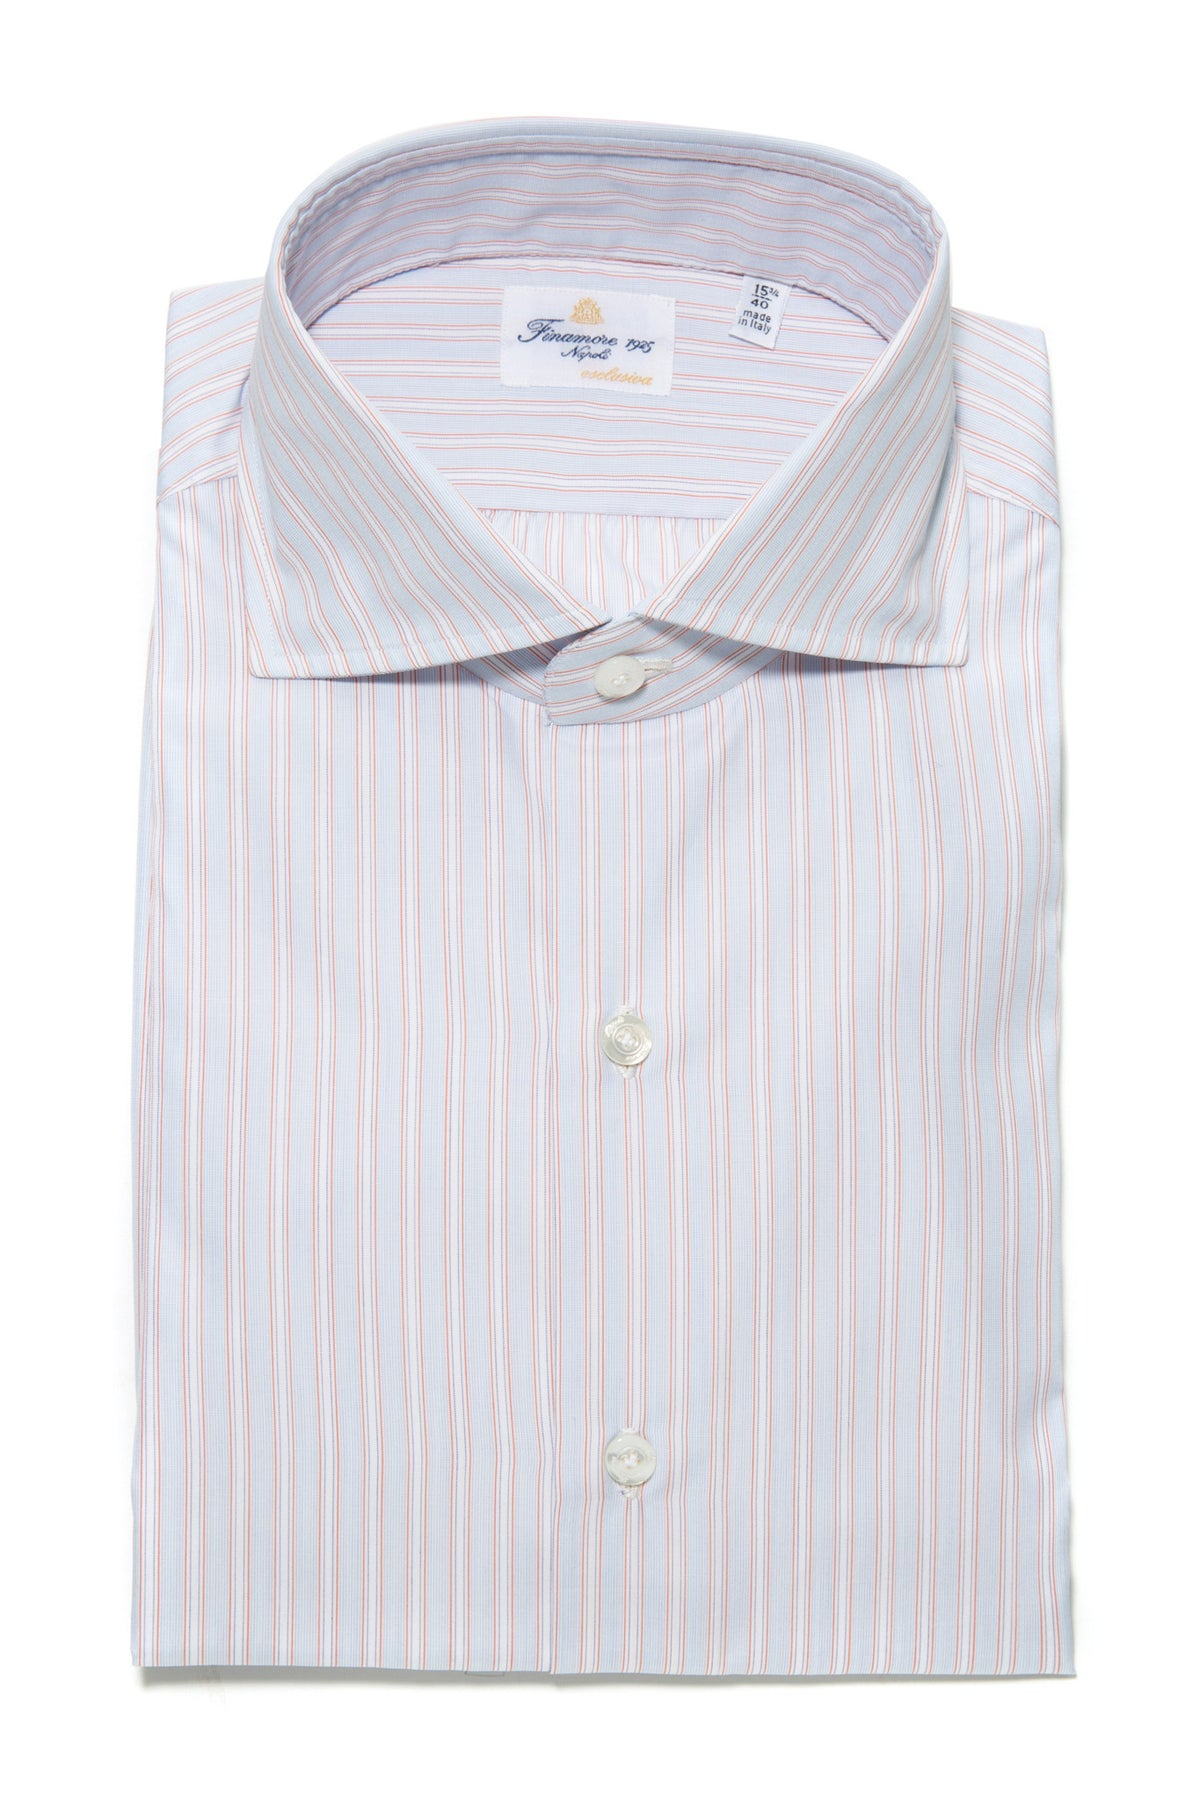 Finamore Rubio Esclusiva Handmade Dress Shirt (322121138200)